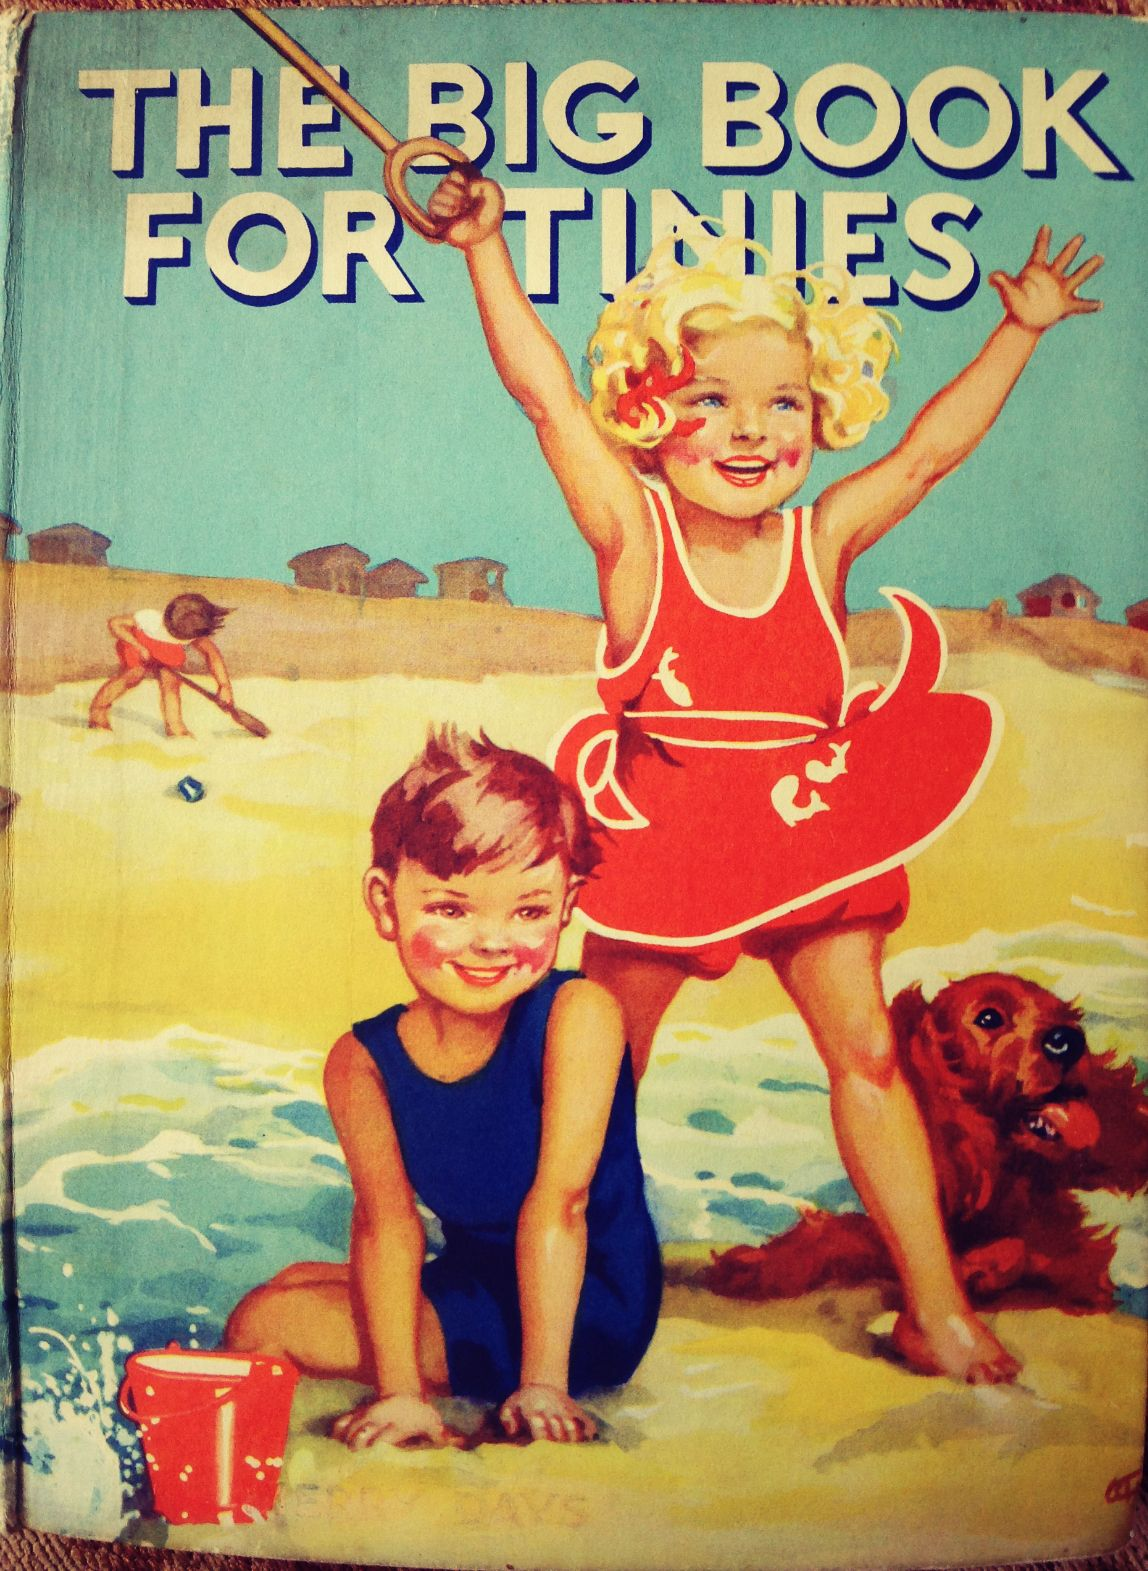 The Big Book for Tinies, Humphrey Milford, undated.